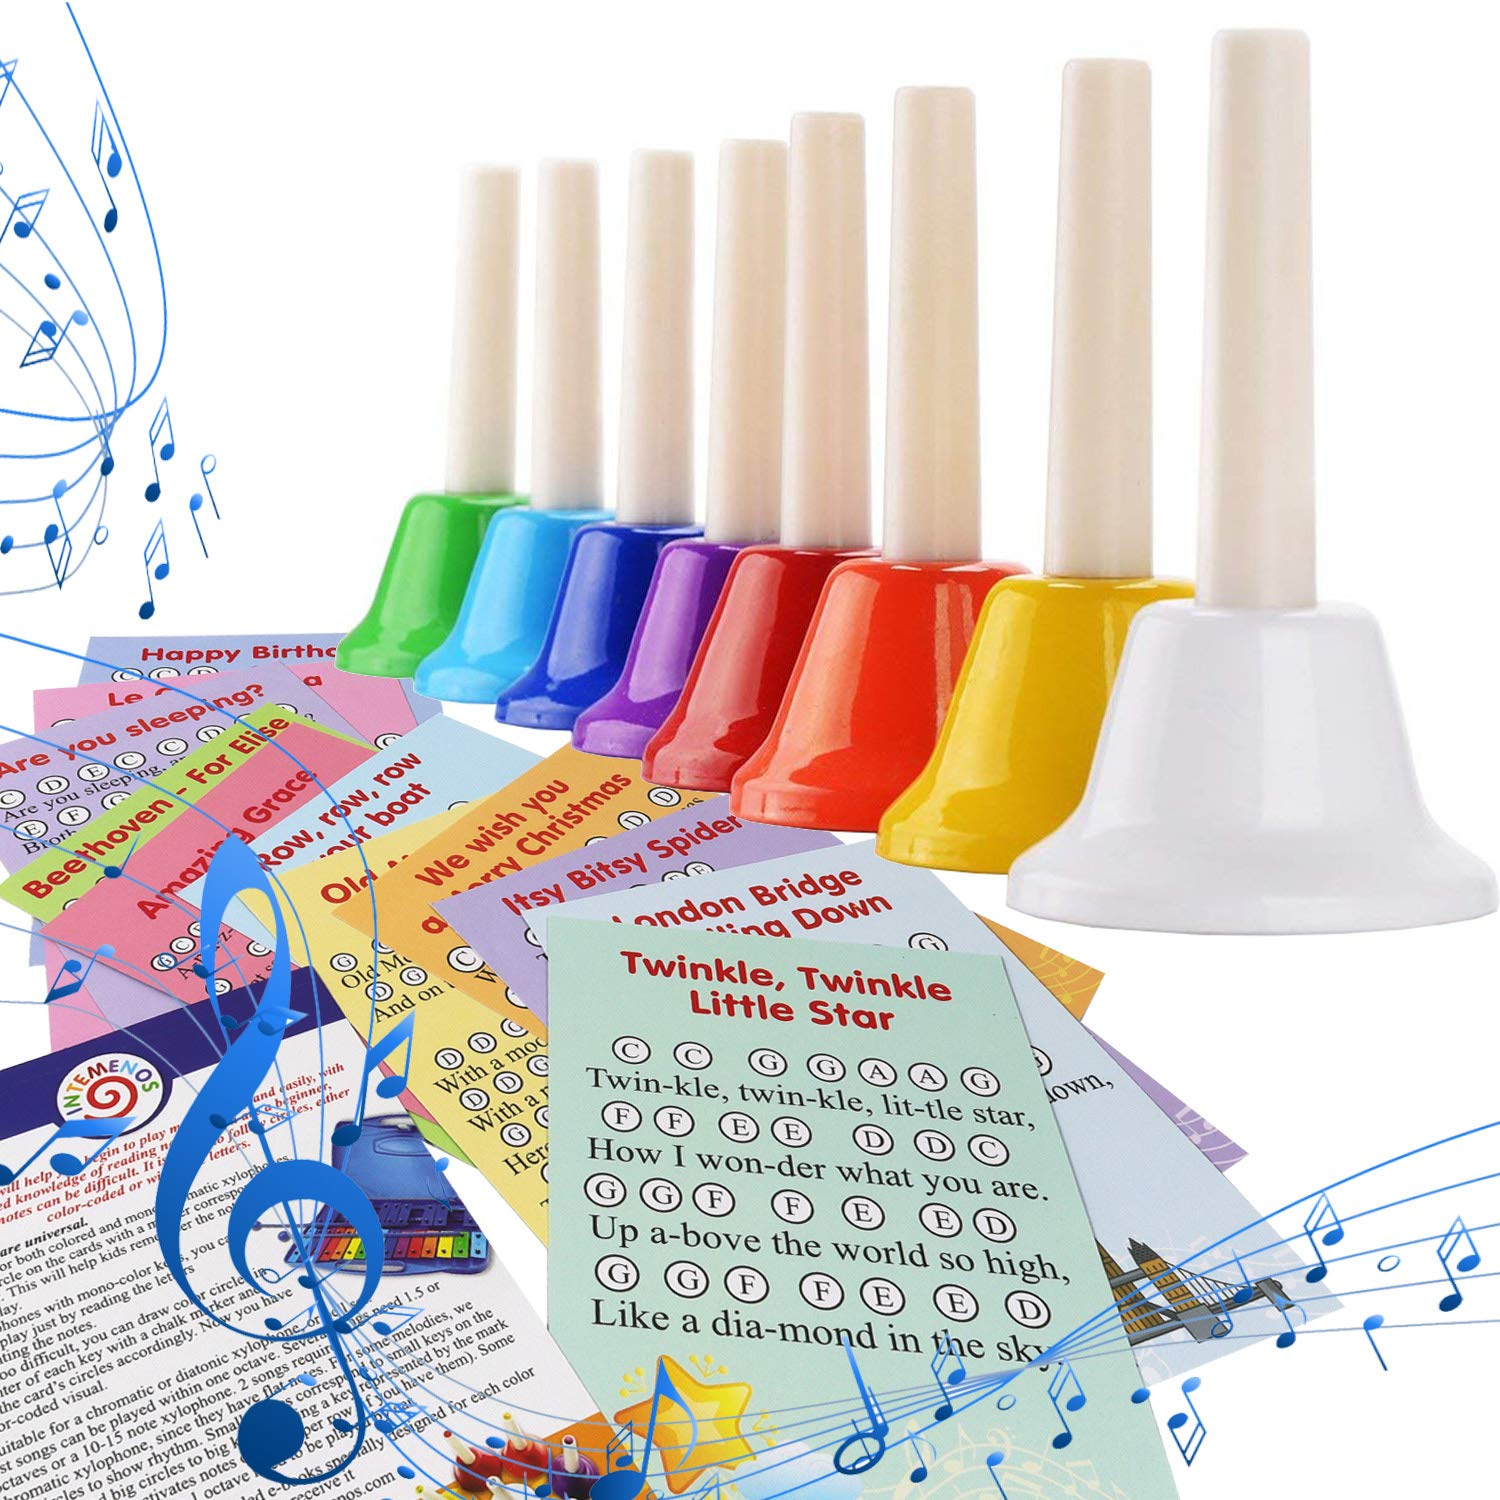 Musical HandBells For Children, Adult, Seniors 8 Note Color-Coded Diatonic Metal Hand Bells Sheet Music Songs included by inTemenos (Image #9)